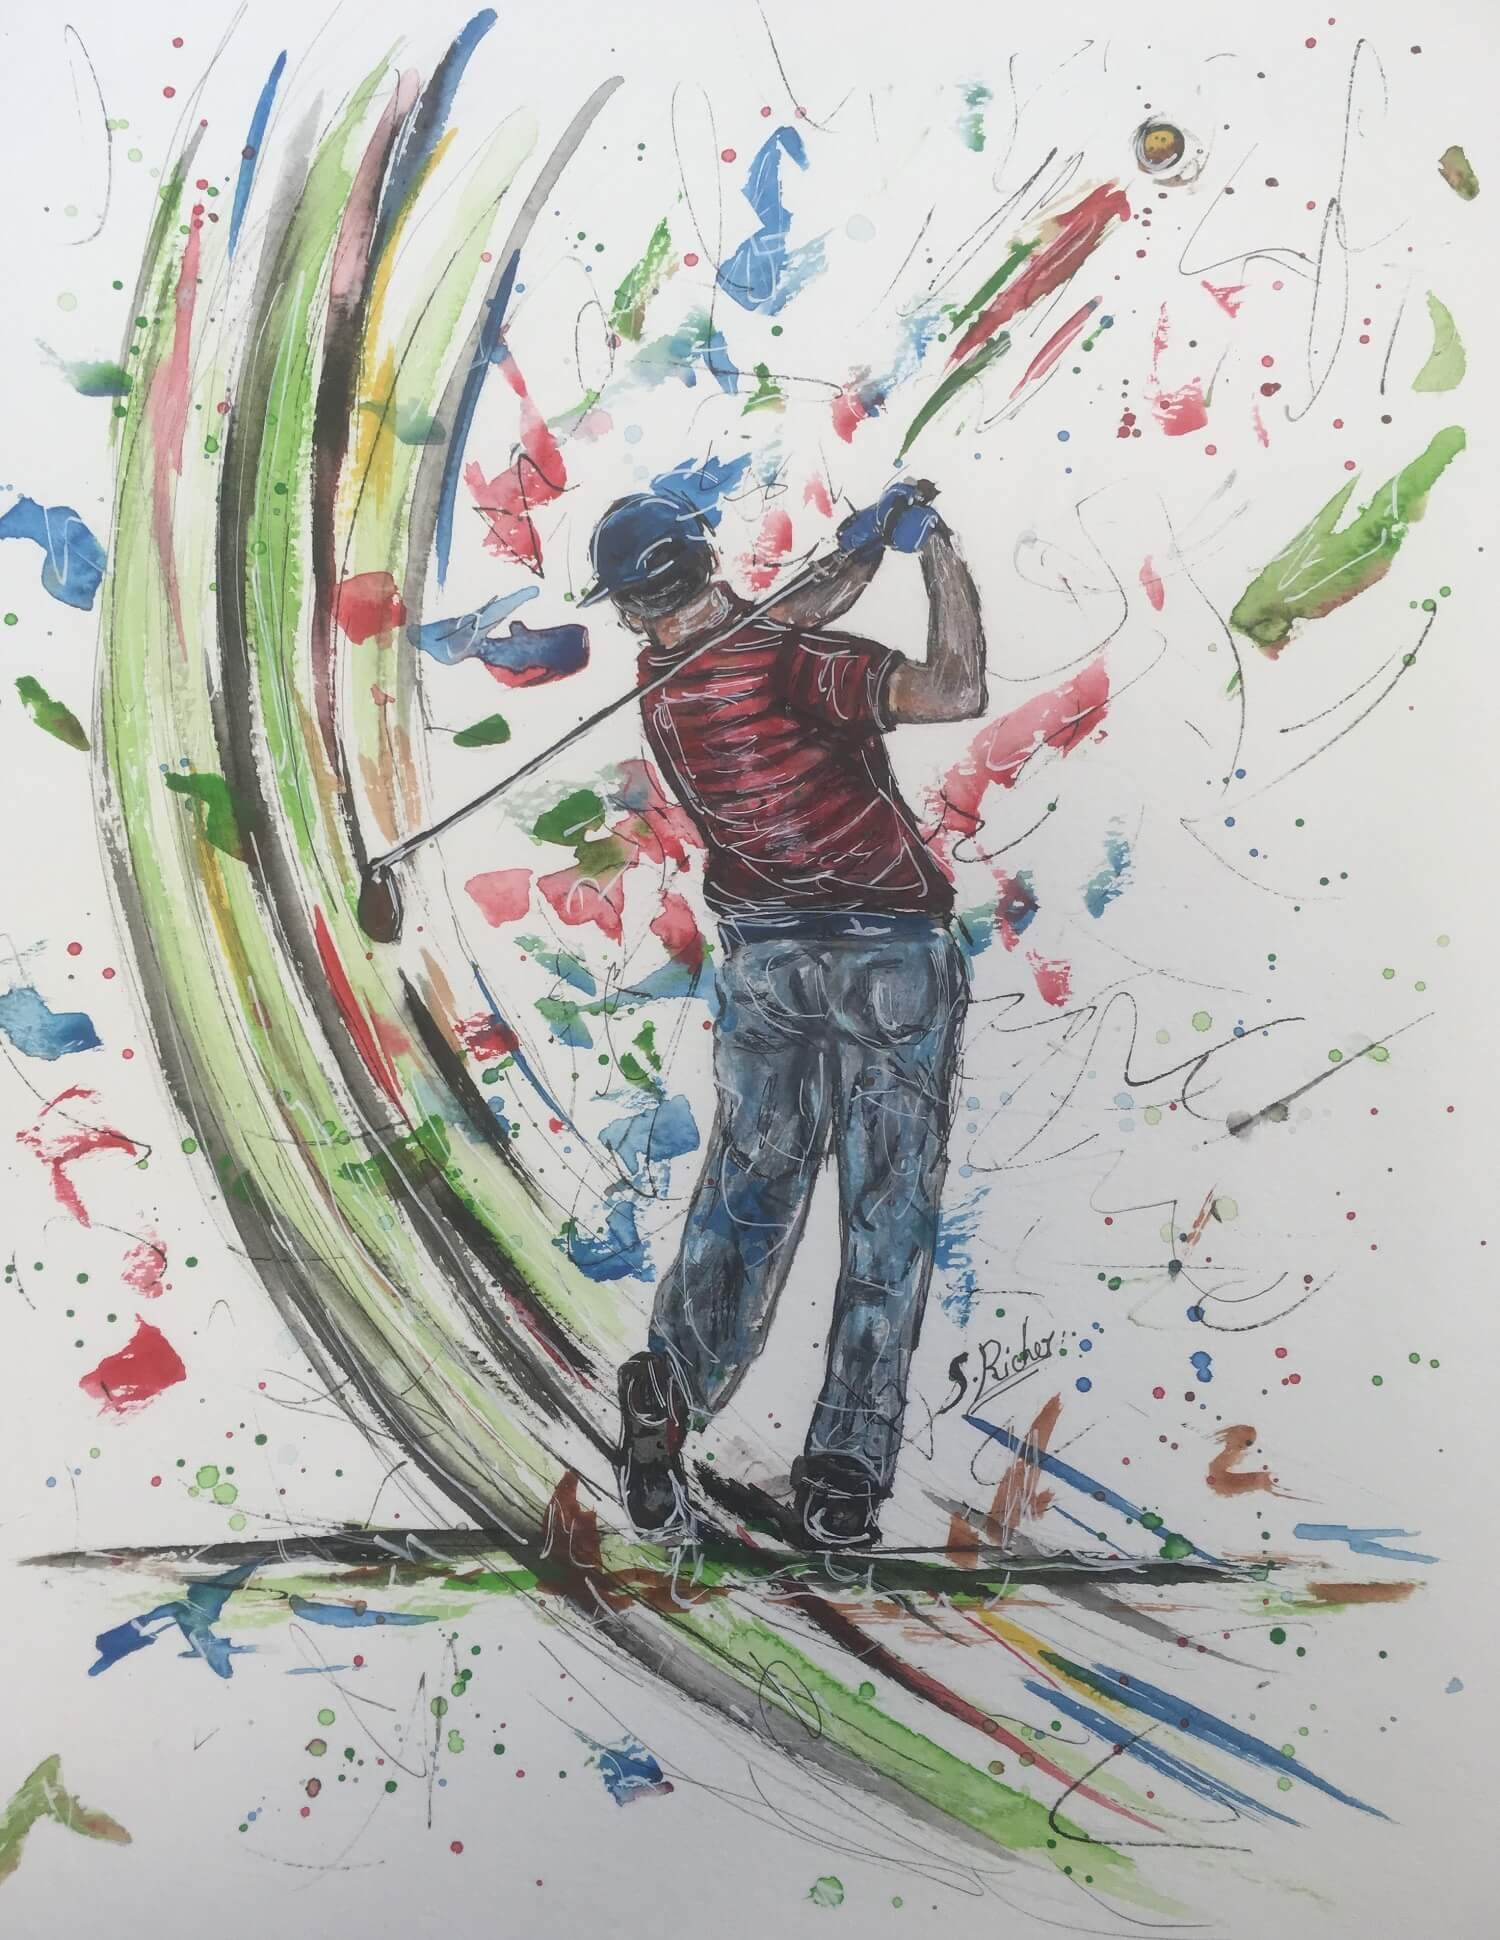 aquarelle les sports golfeur severine richer